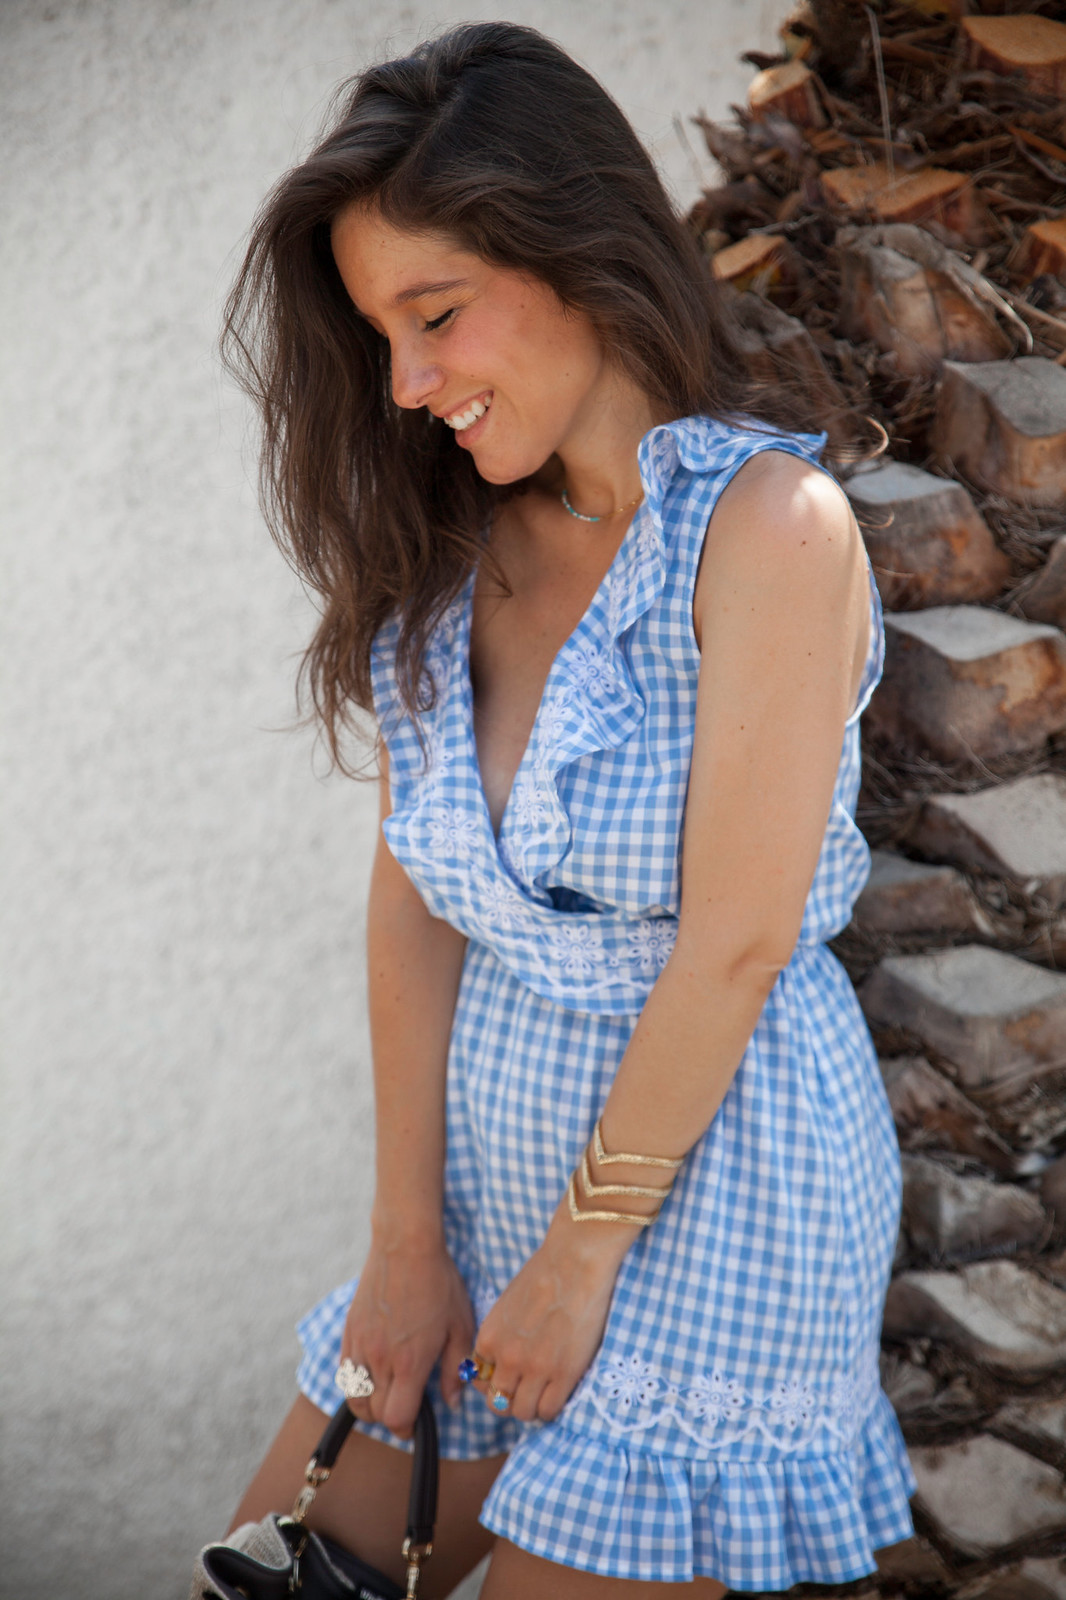 06_Revolve_dress_tularosa_gingham_style_outfit_theguestgirl_influencer_barcelona_spain